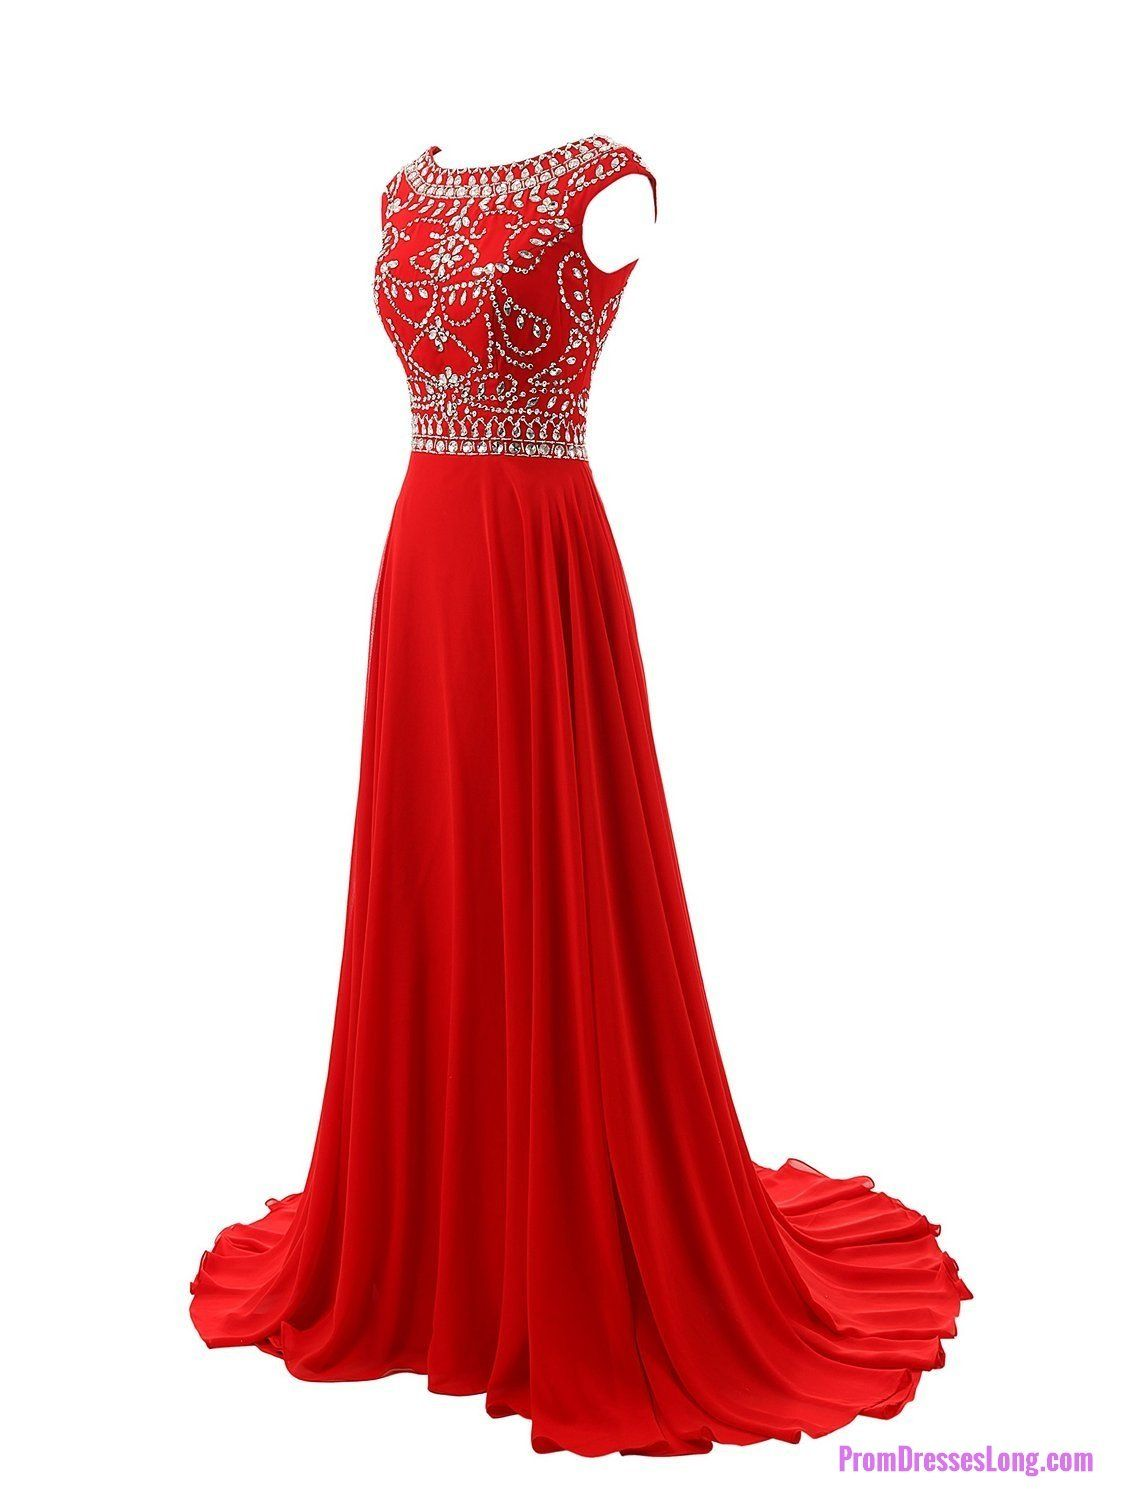 Red prom dresseselegant evening dresseslong formal gownsbeading